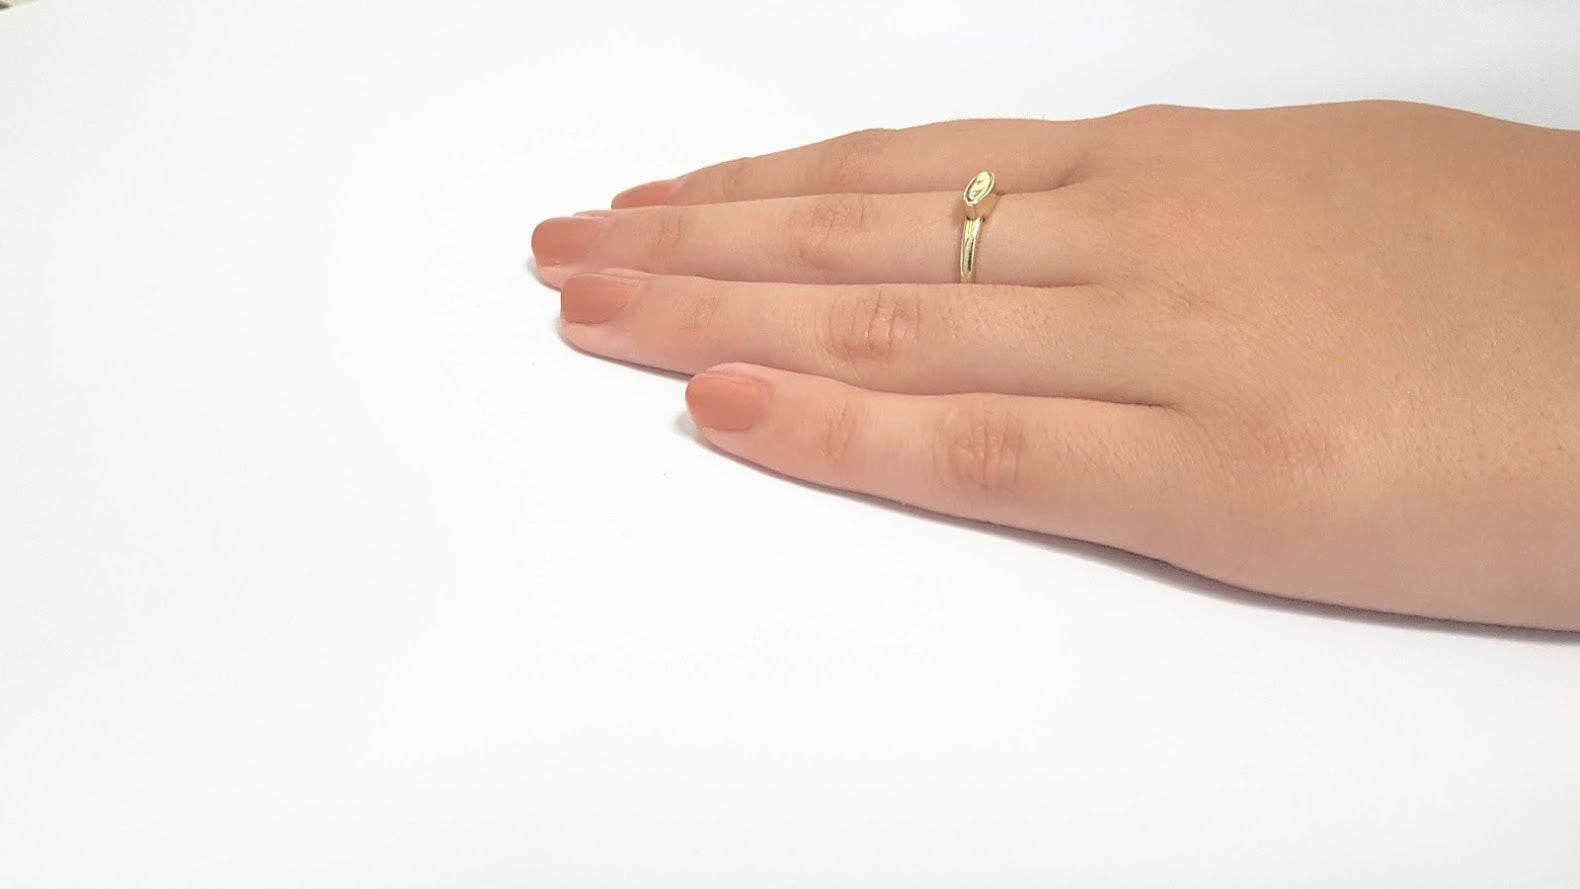 14K gold Ring, Stackable Ring, Personalized Ring, Simple ring, Delicate ring - AlmaJewelryShop